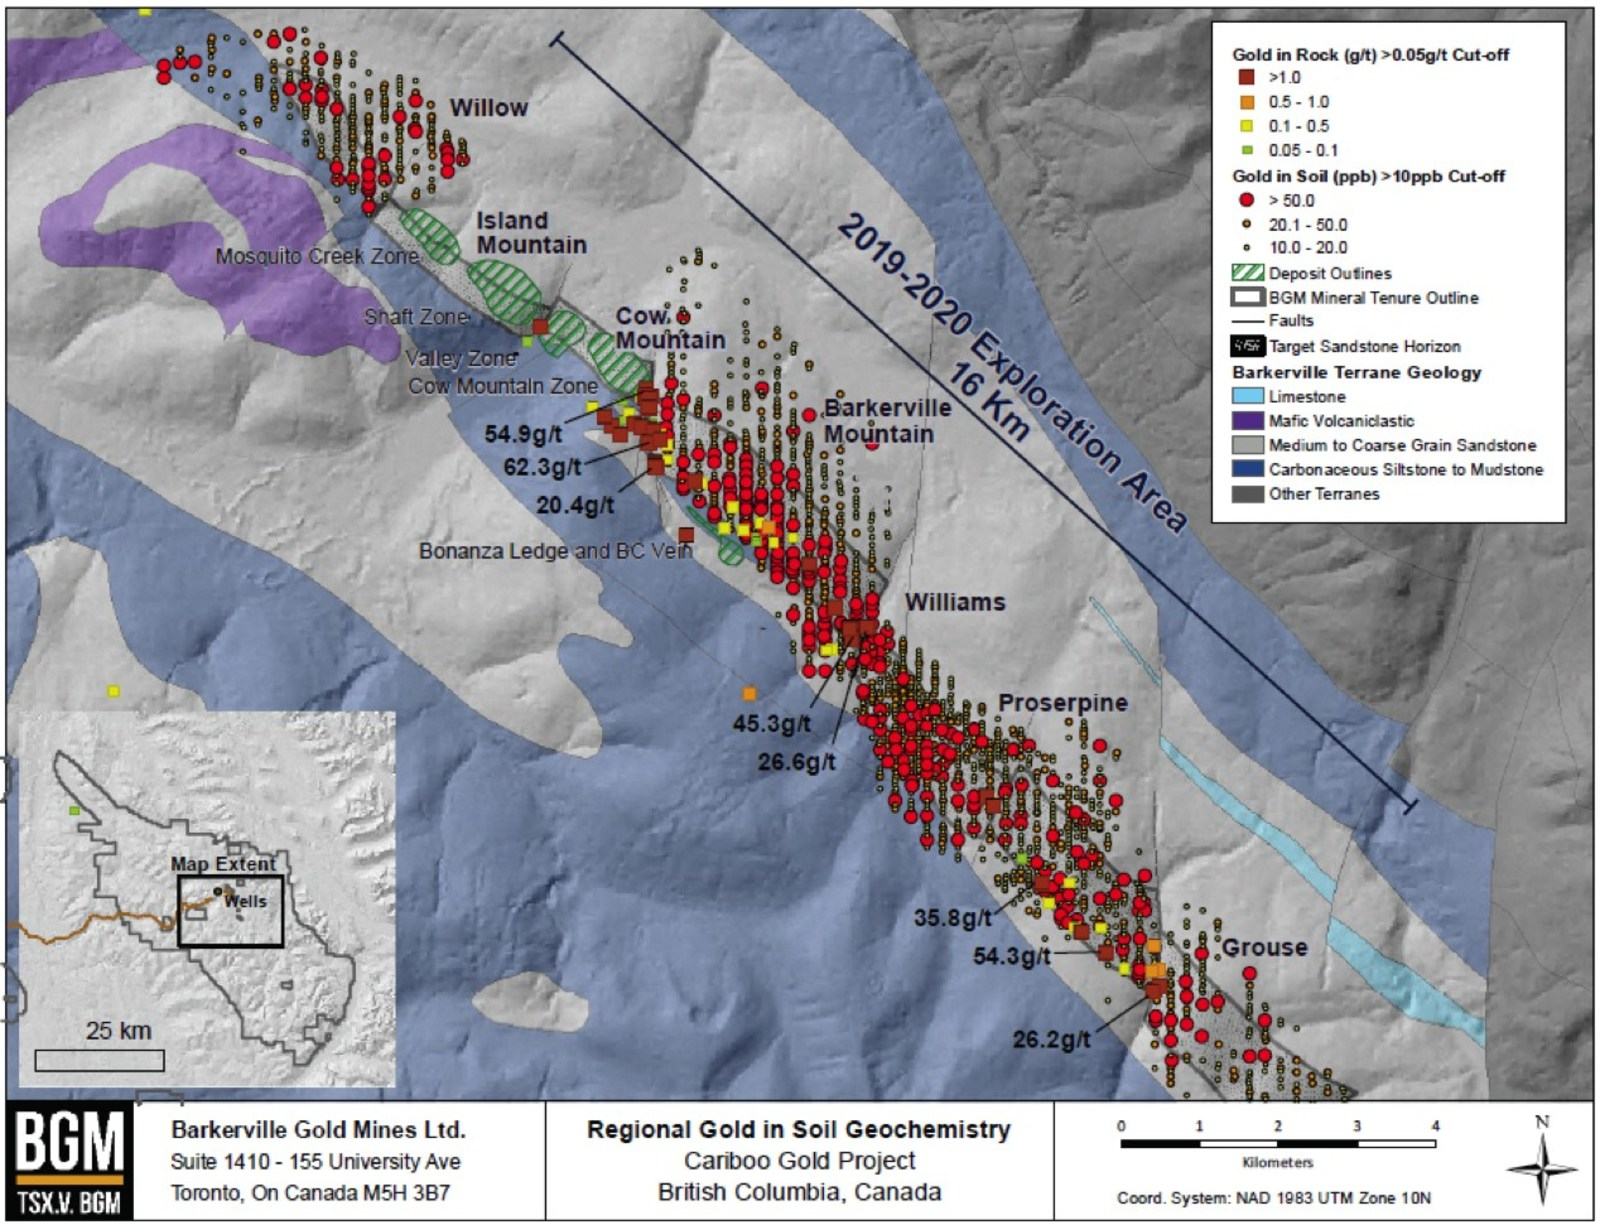 Barkerville Gold Mines Defines Significant Exploration Potential and